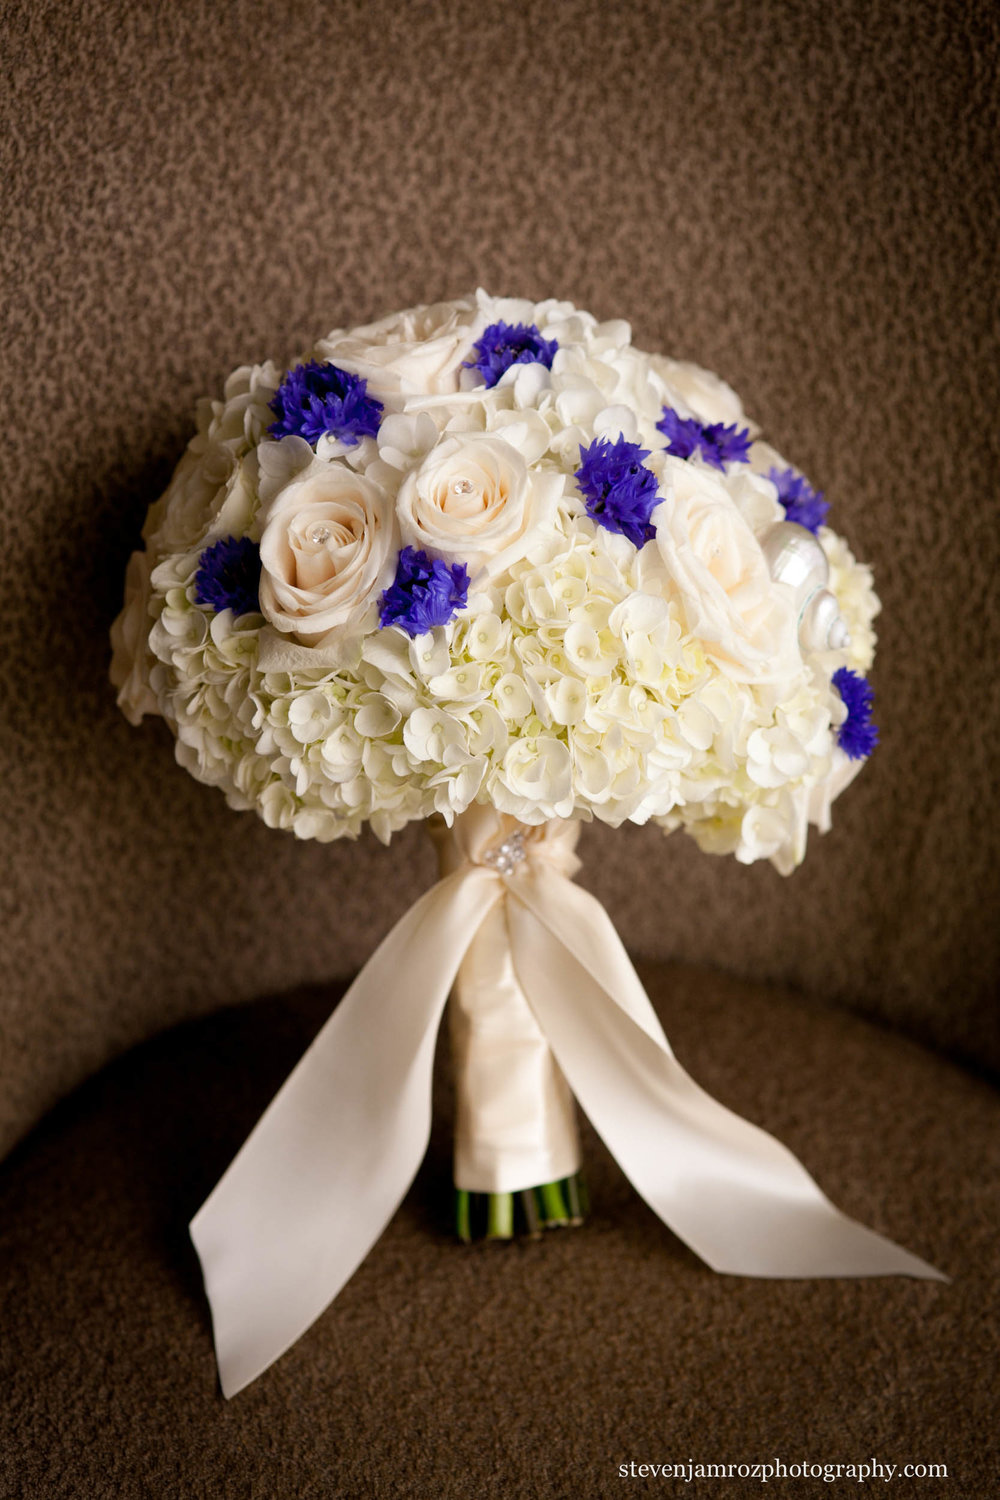 purple-white-wedding-flower-bouquet-steven-jamroz-photography-0286.jpg